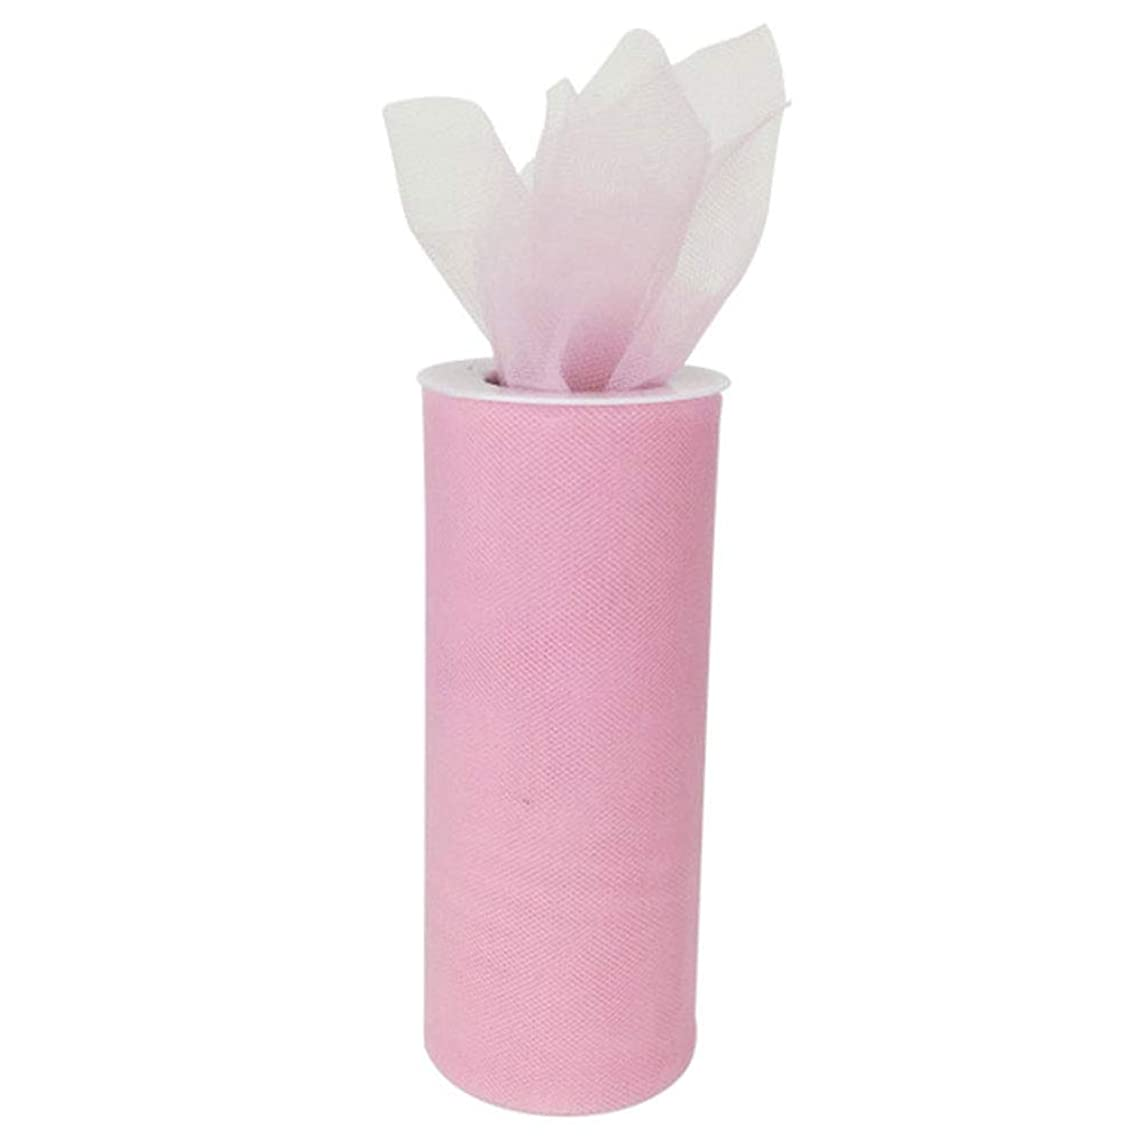 Just Artifacts - Tulle Fabric Roll - 6in width/25yrd Length - Baby Pink